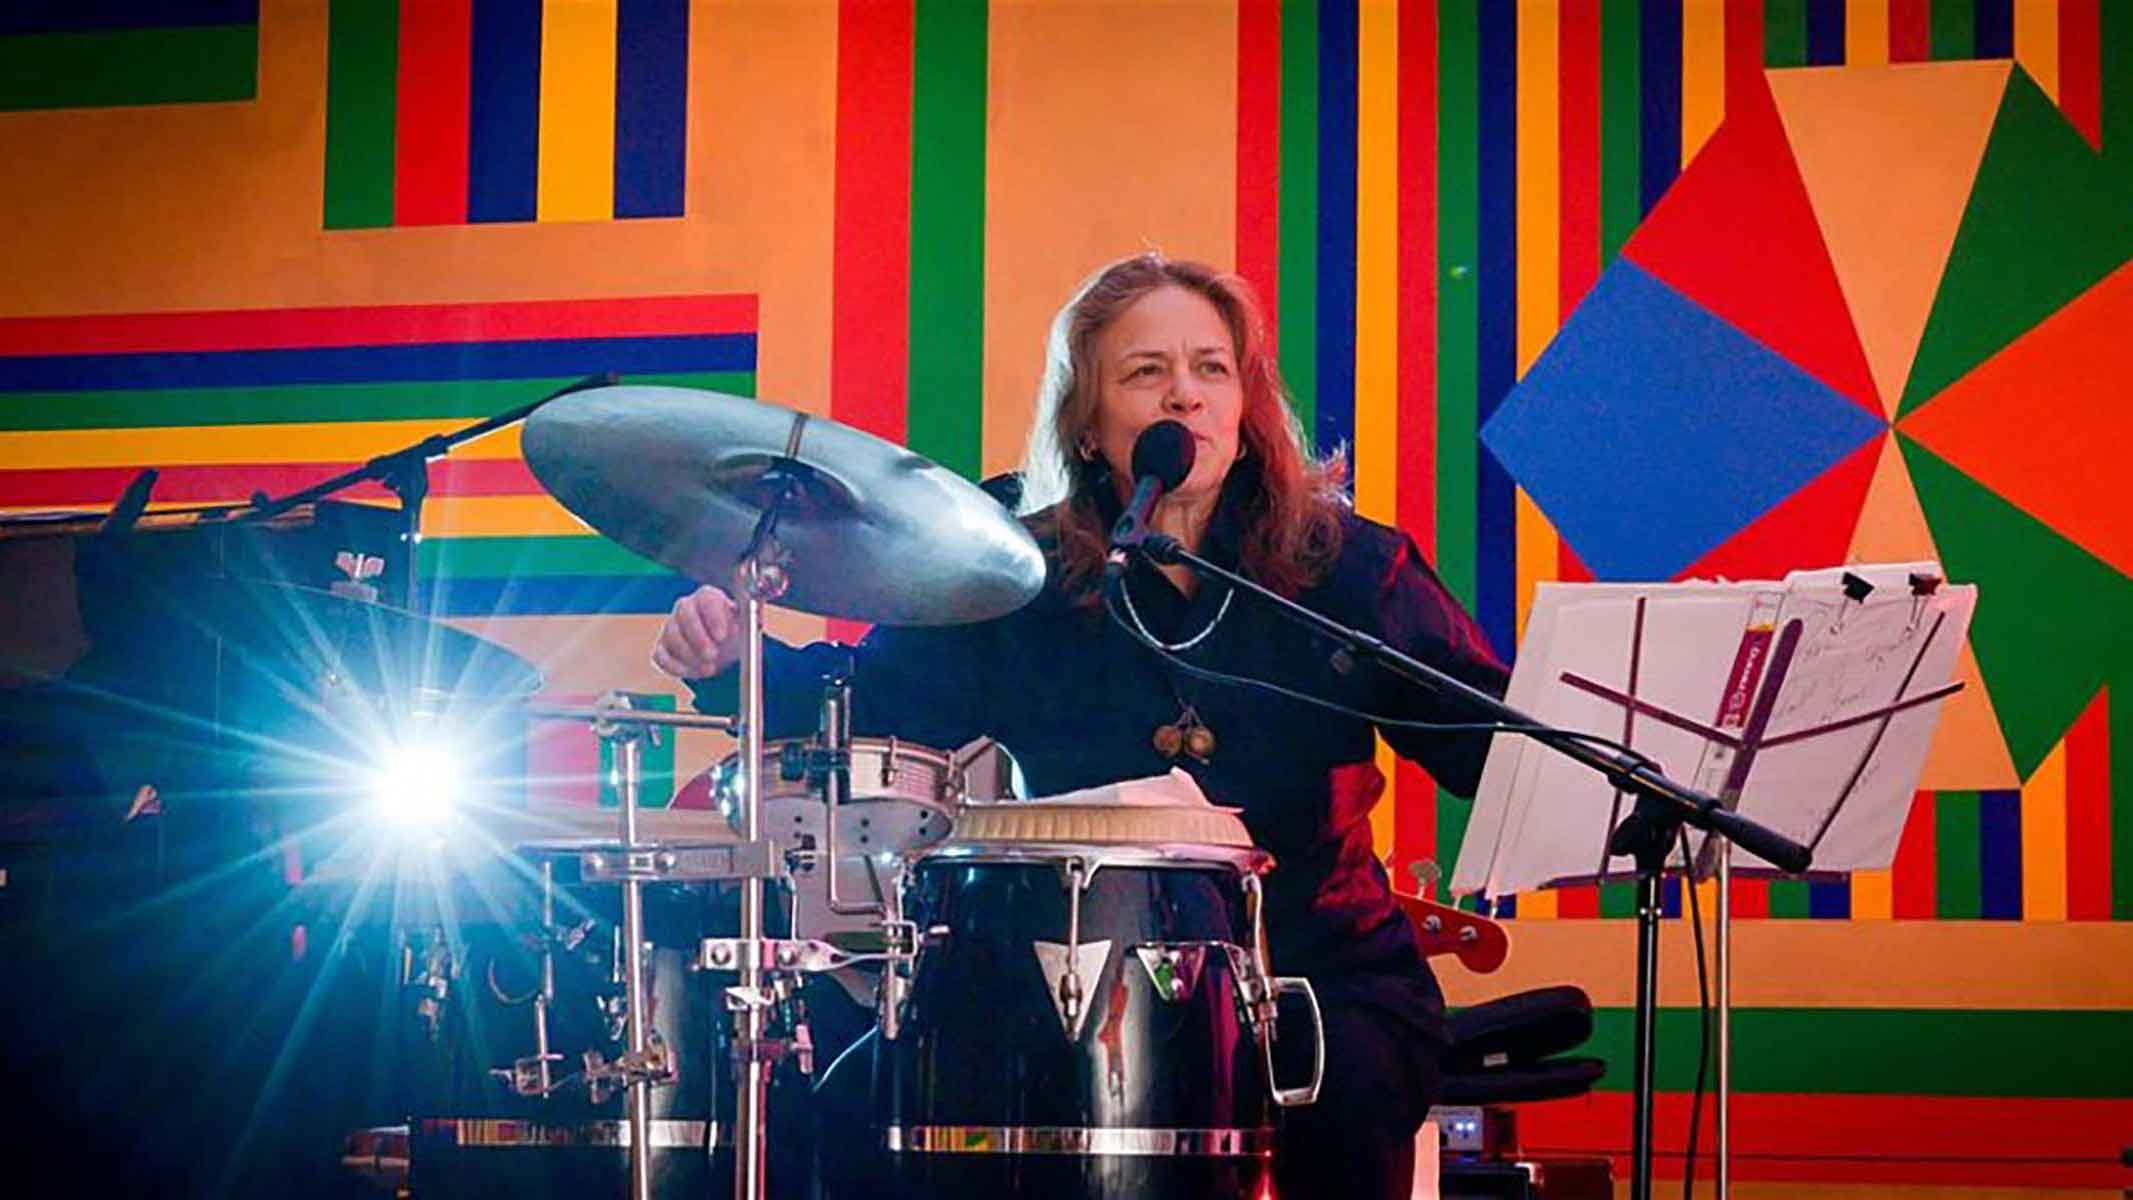 Annet A Aguilar plays the drums during a concert